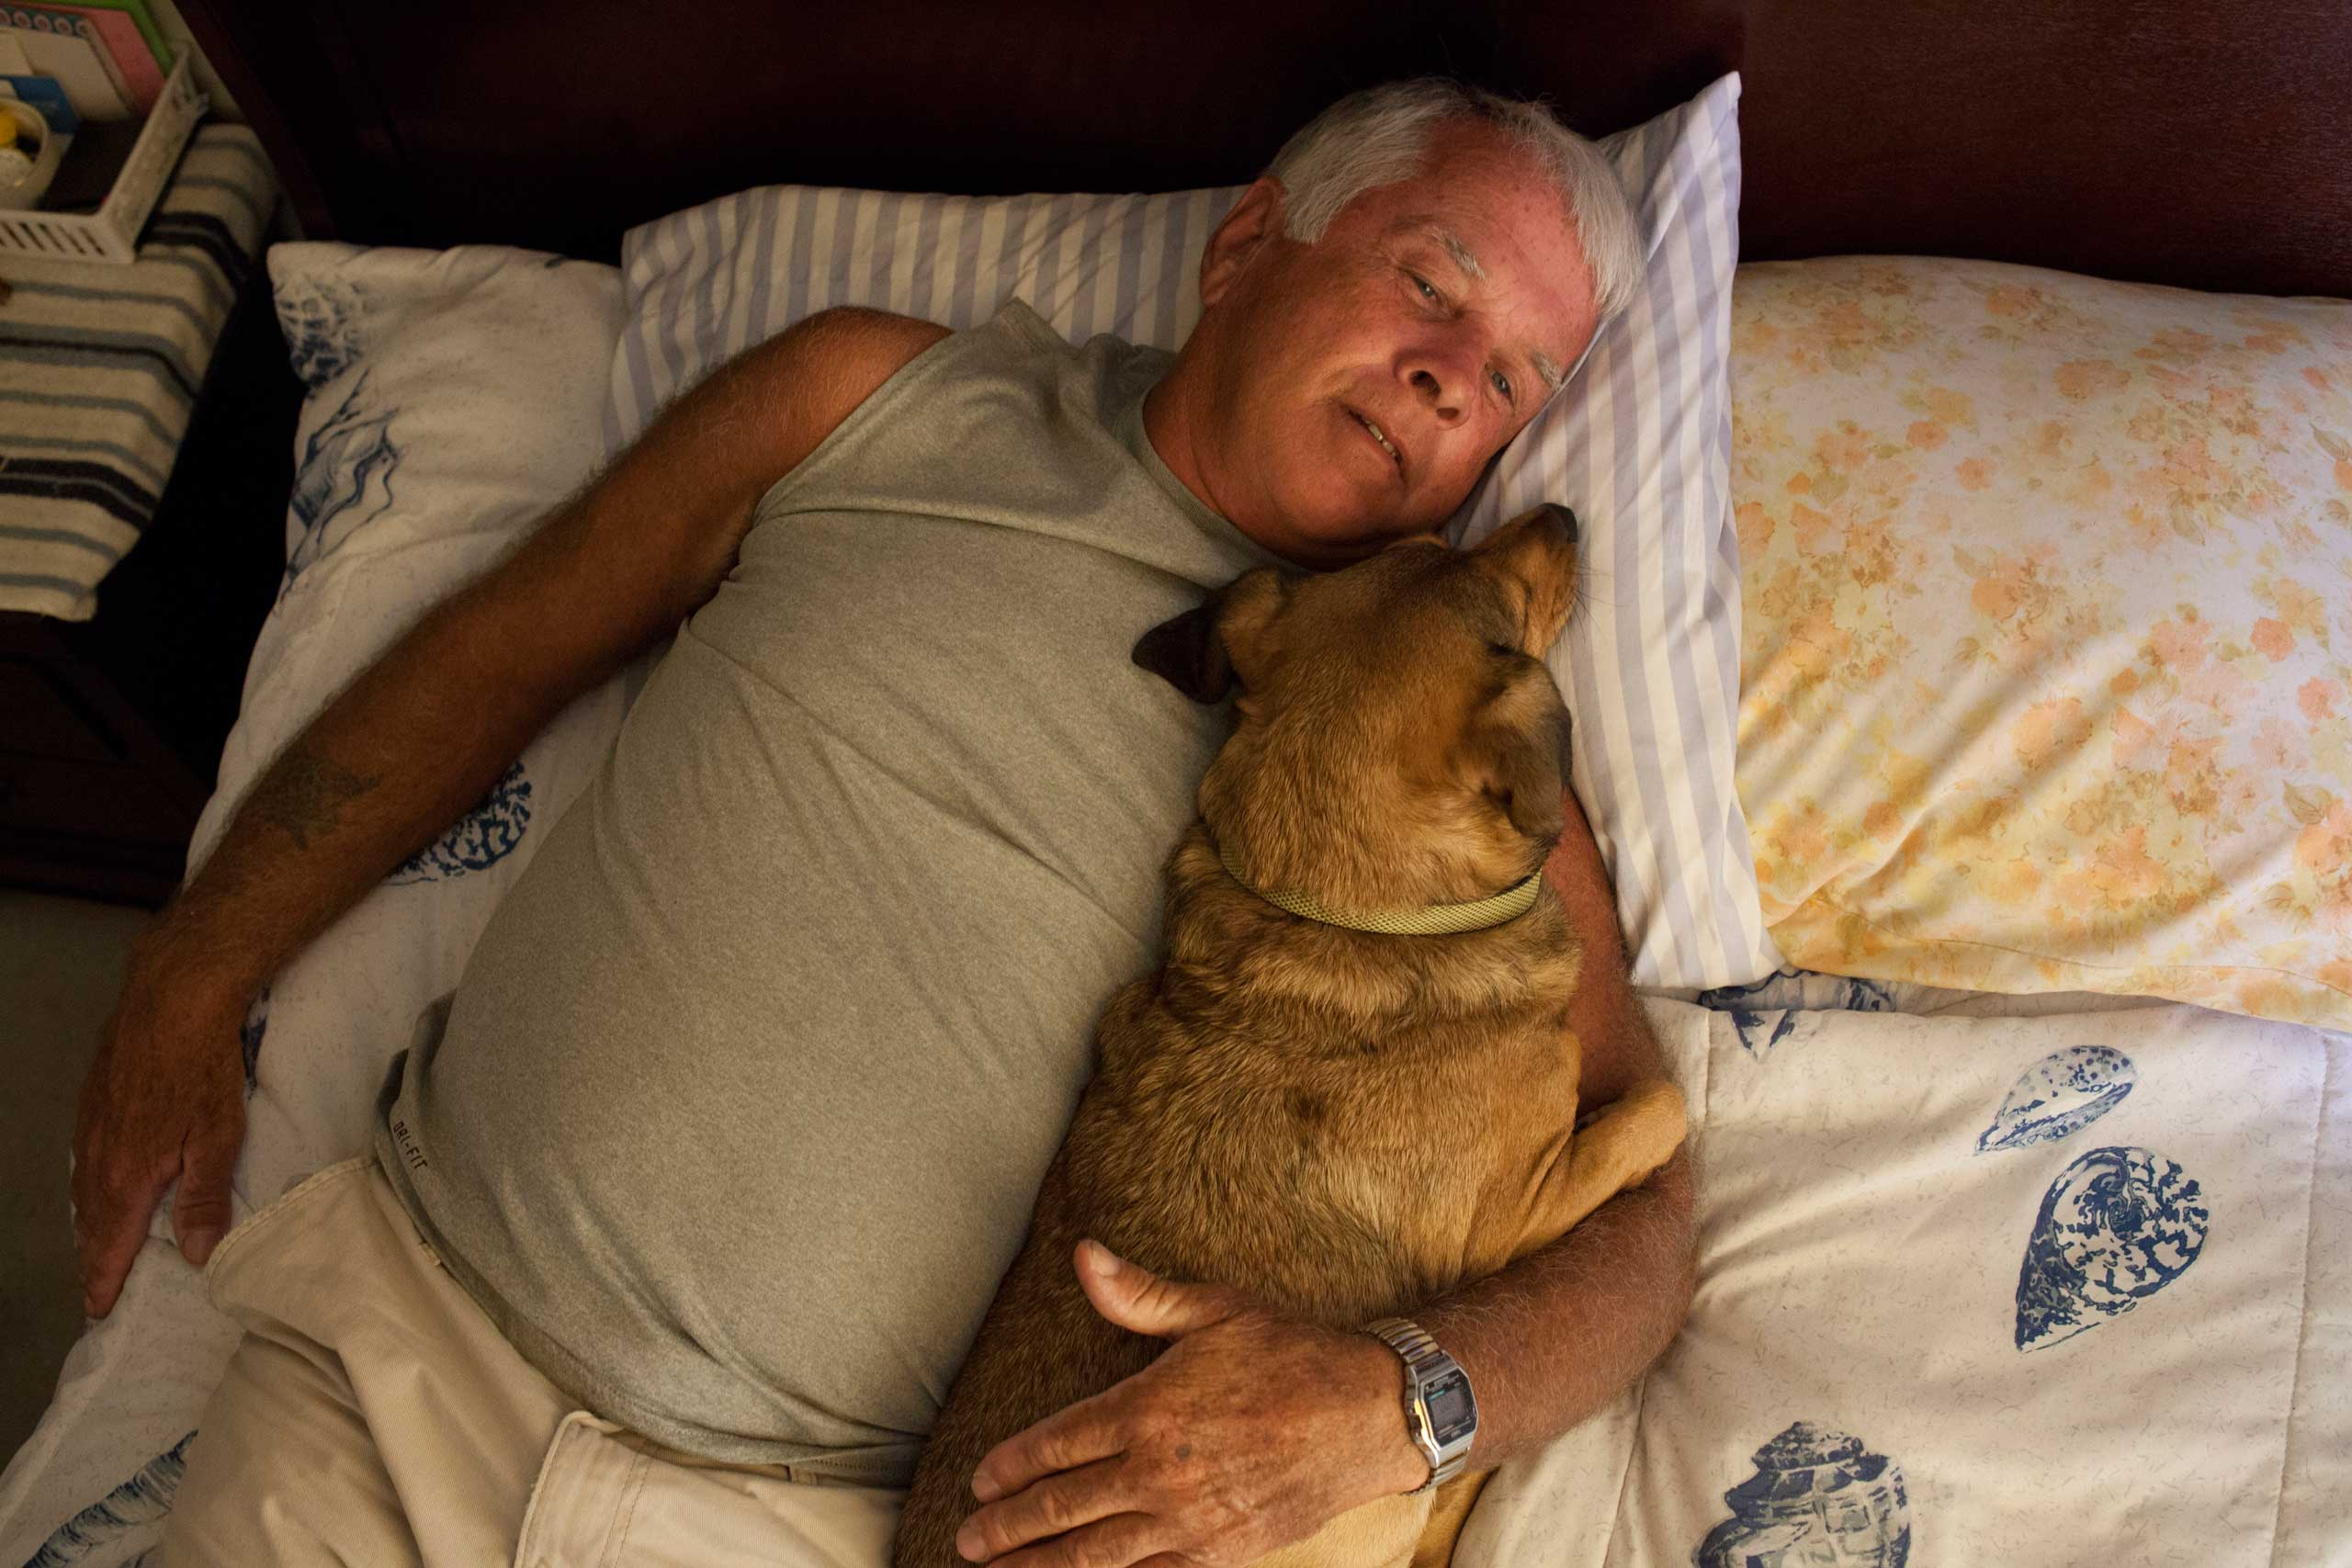 Gene laying down with his dog Killer for a nap.                                                               Only a fool would truly trust anyone if you are a sex offender.